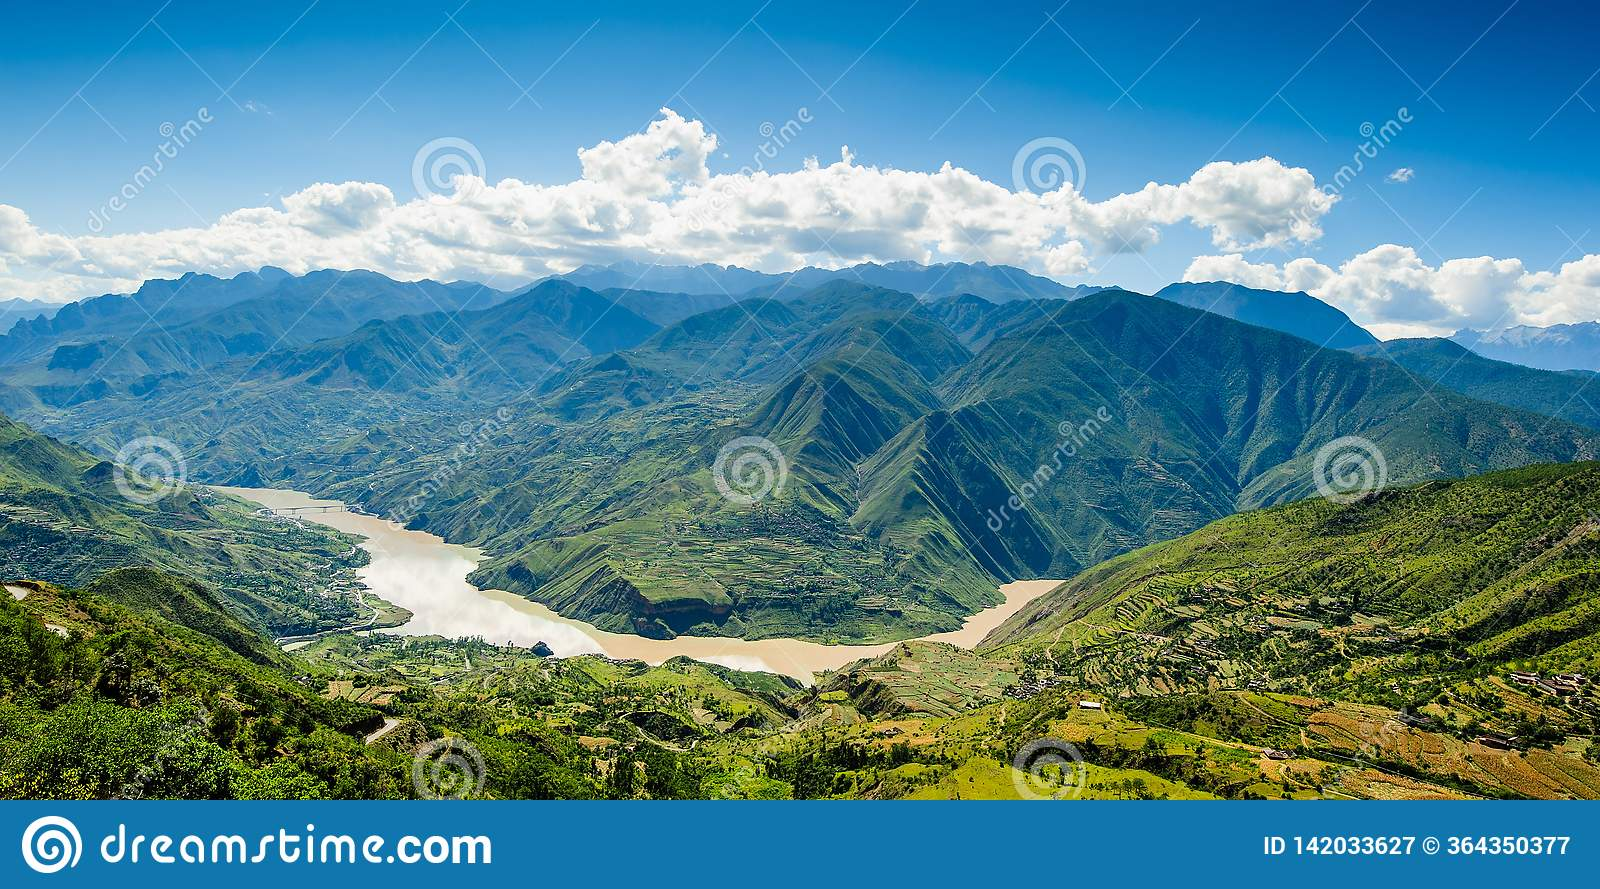 landscape with mountainside and changjiang river in highland